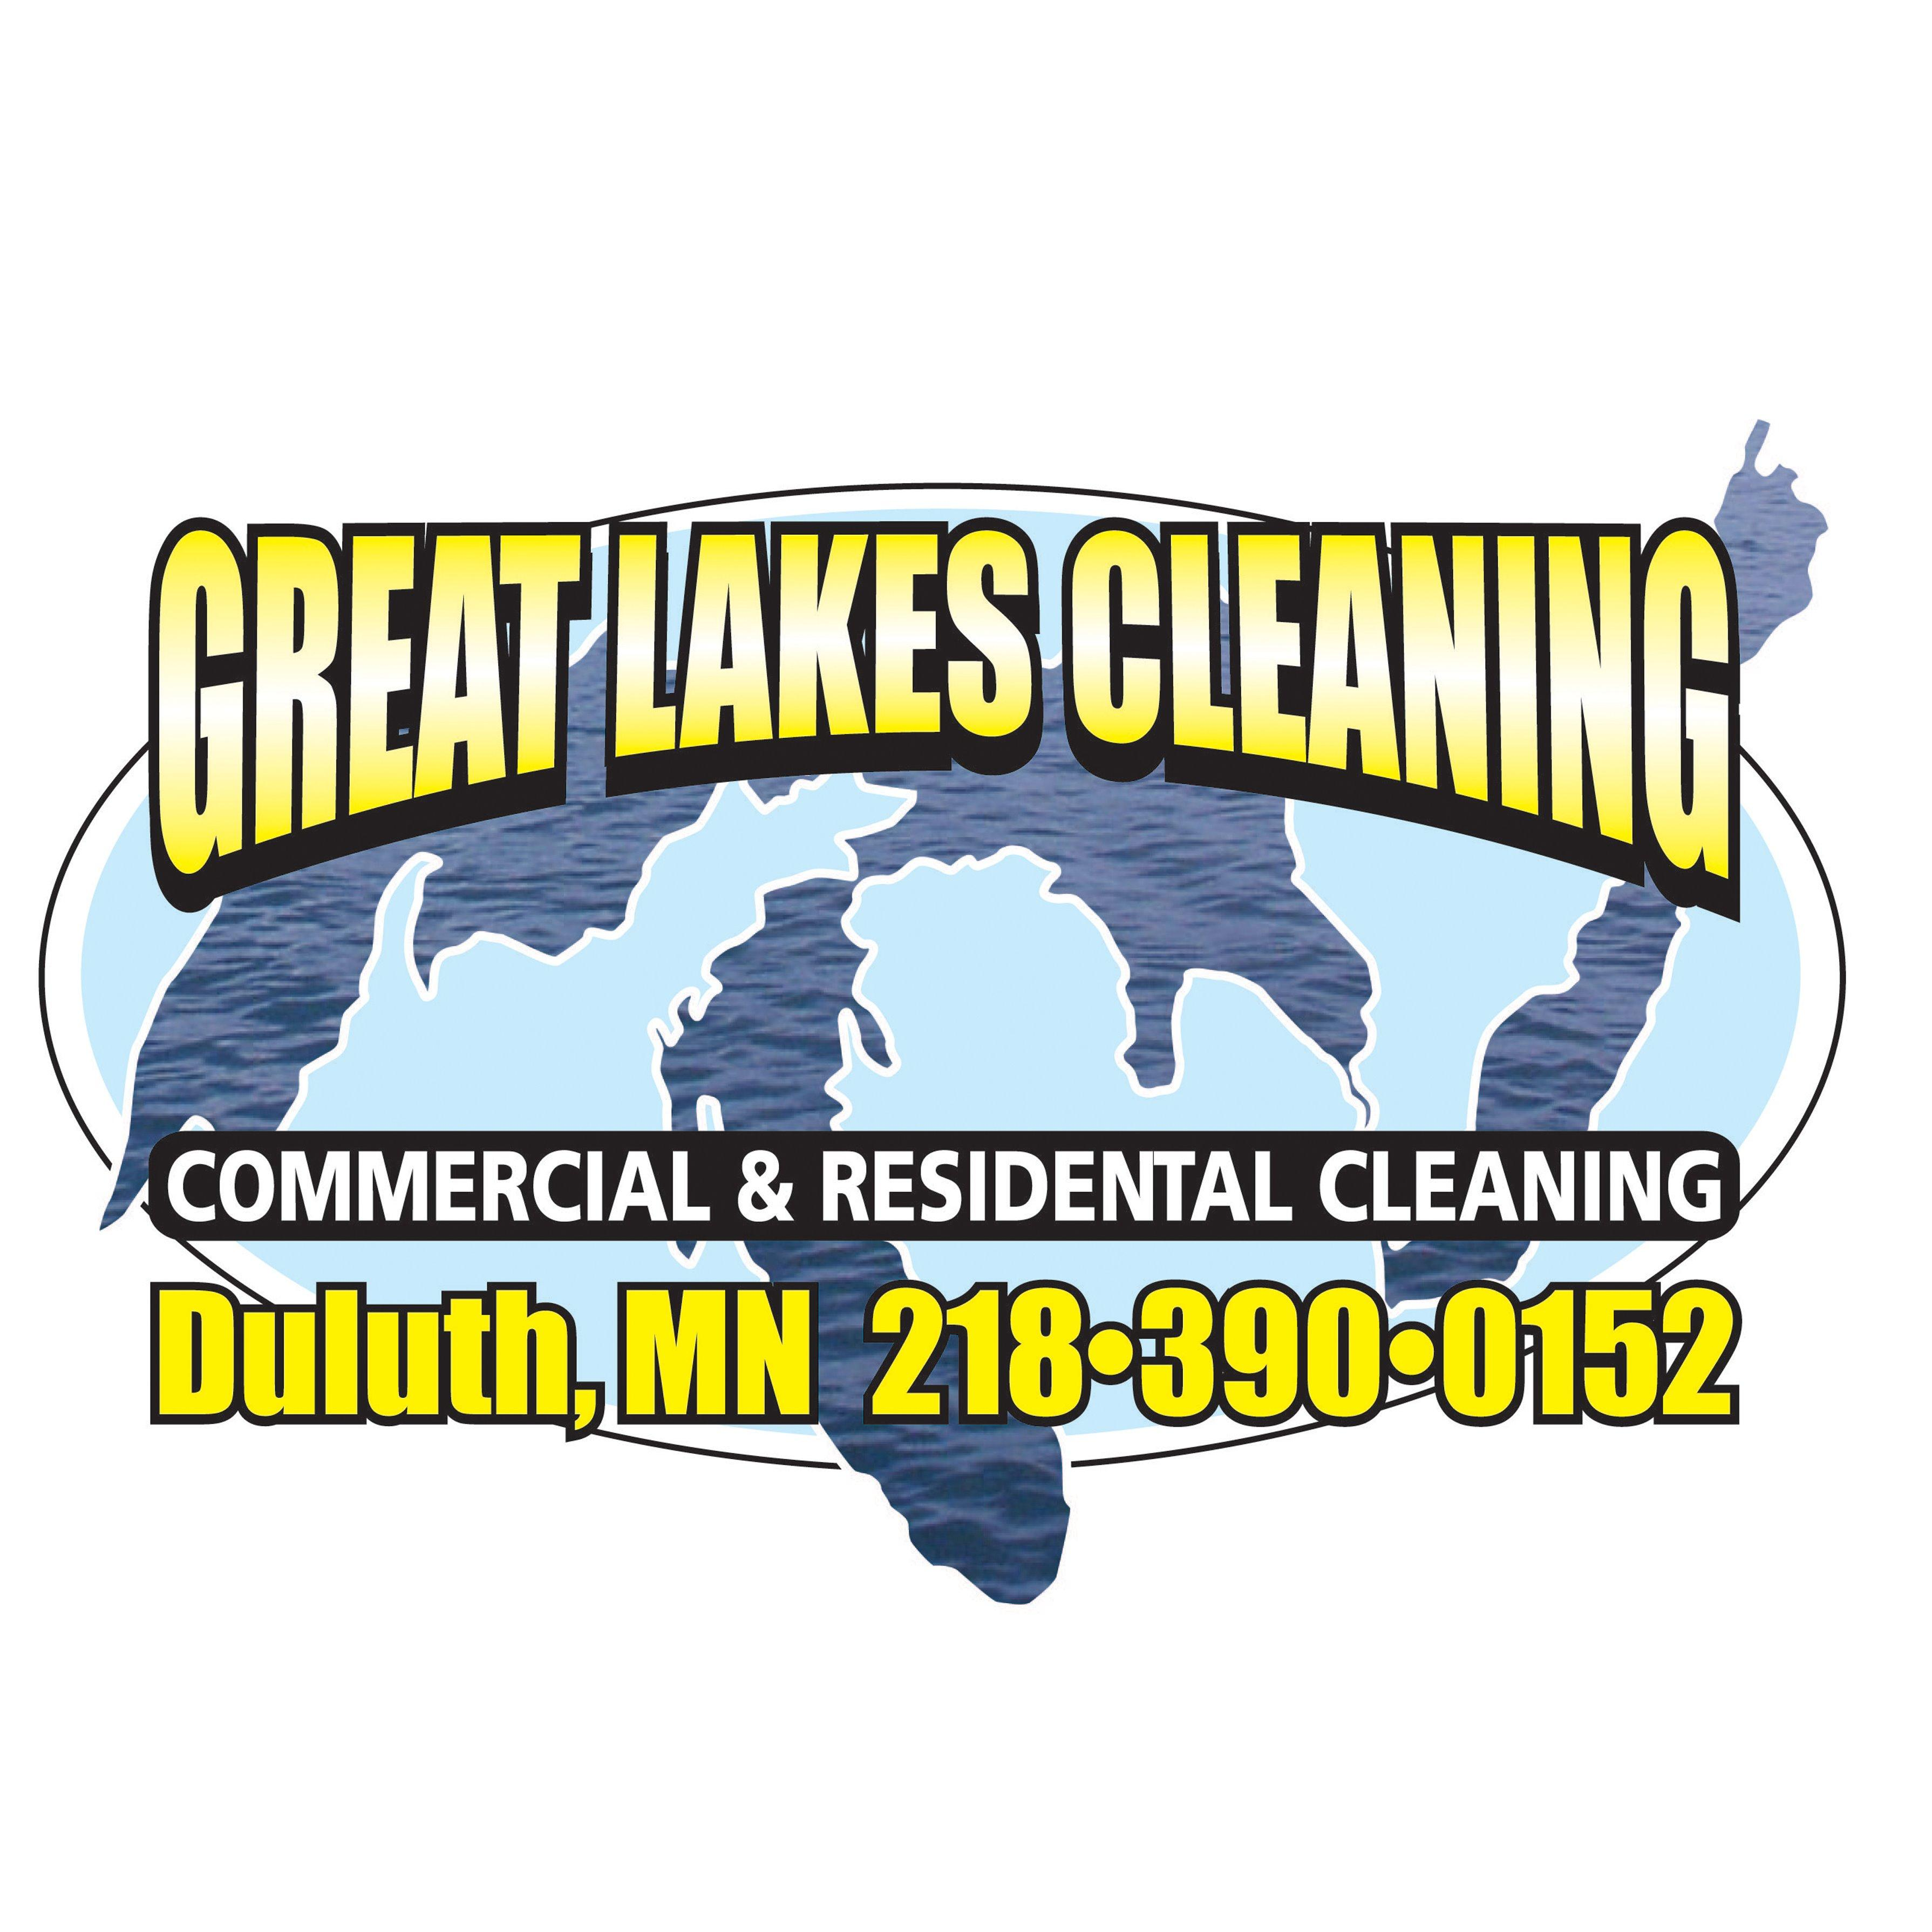 GREAT LAKES CLEANING LLC image 5